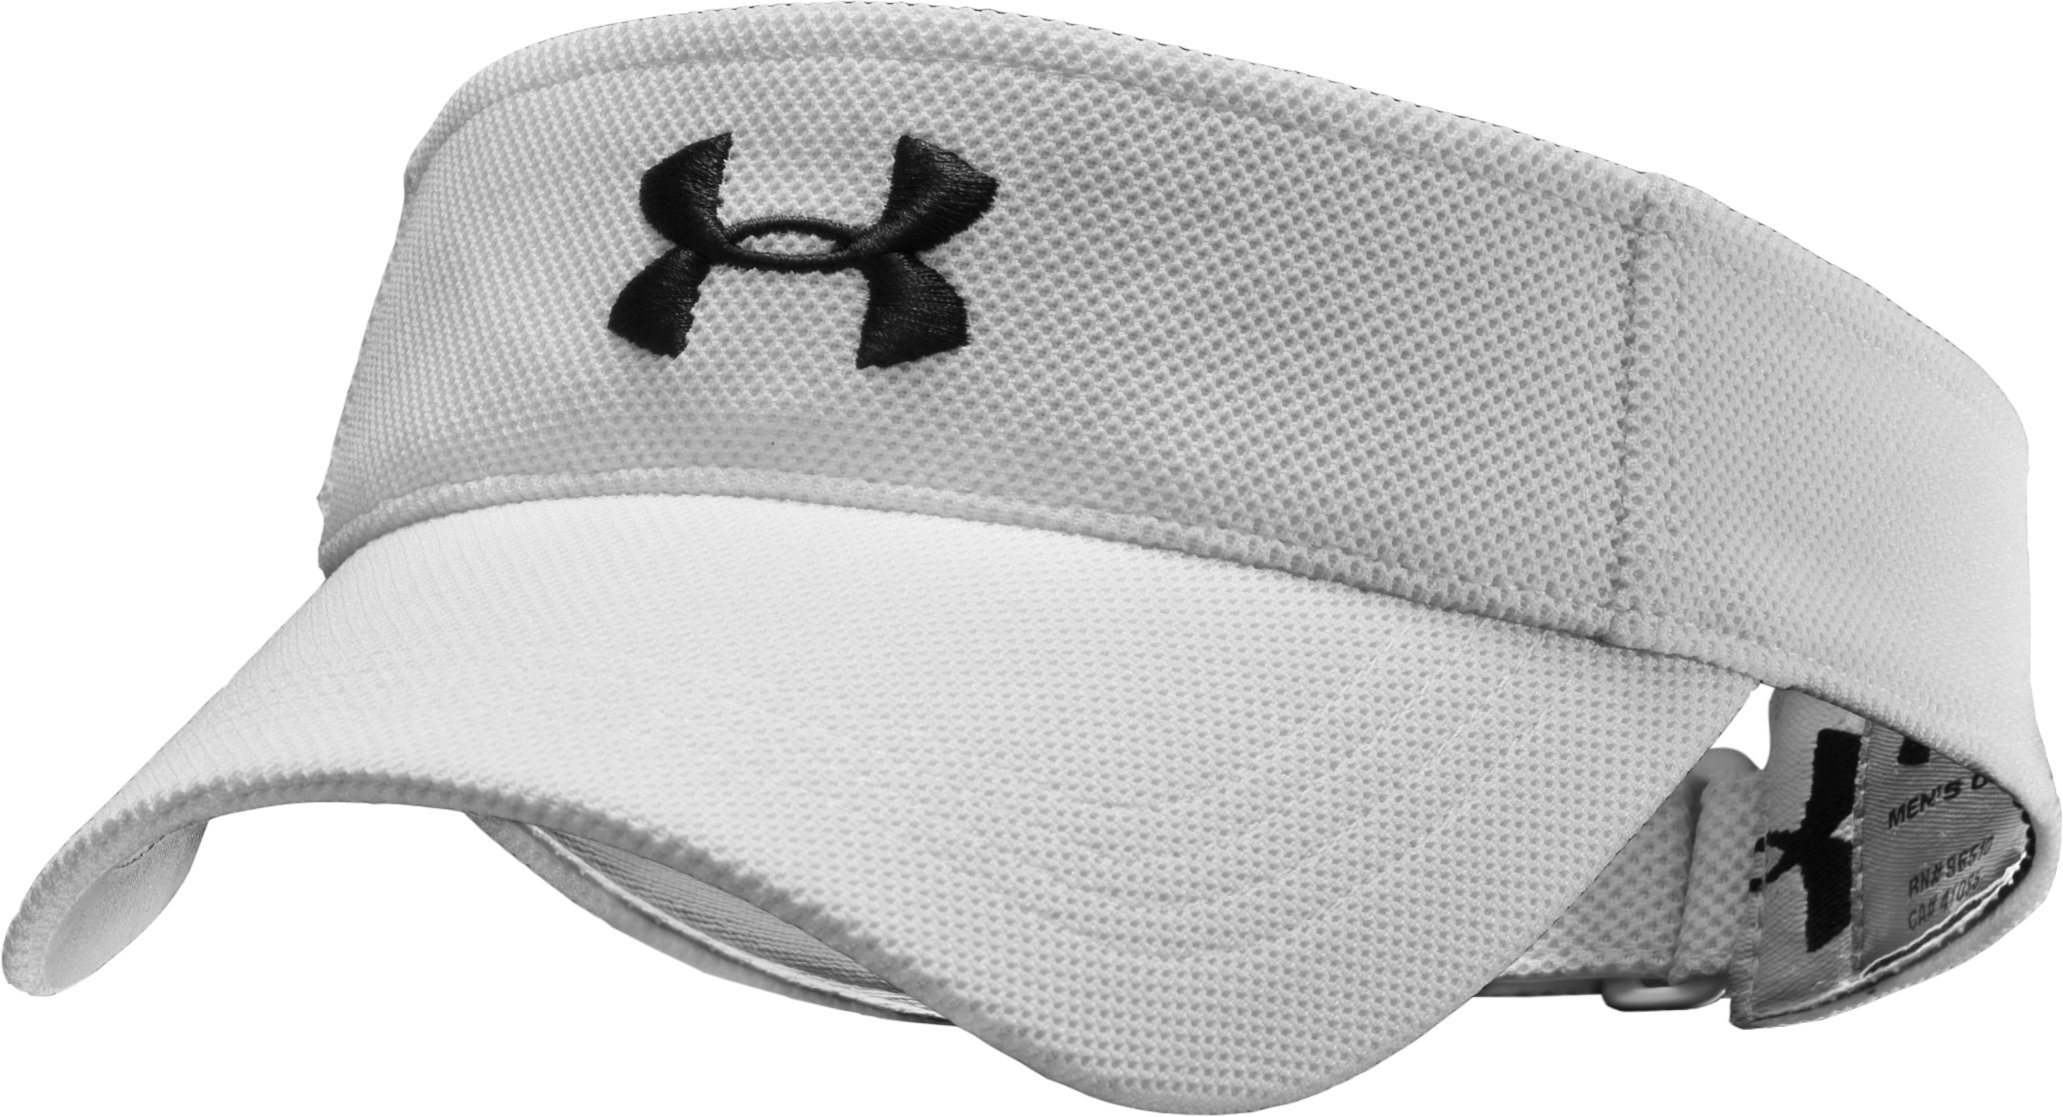 Boys' Audible Adjustable Visor, White, zoomed image